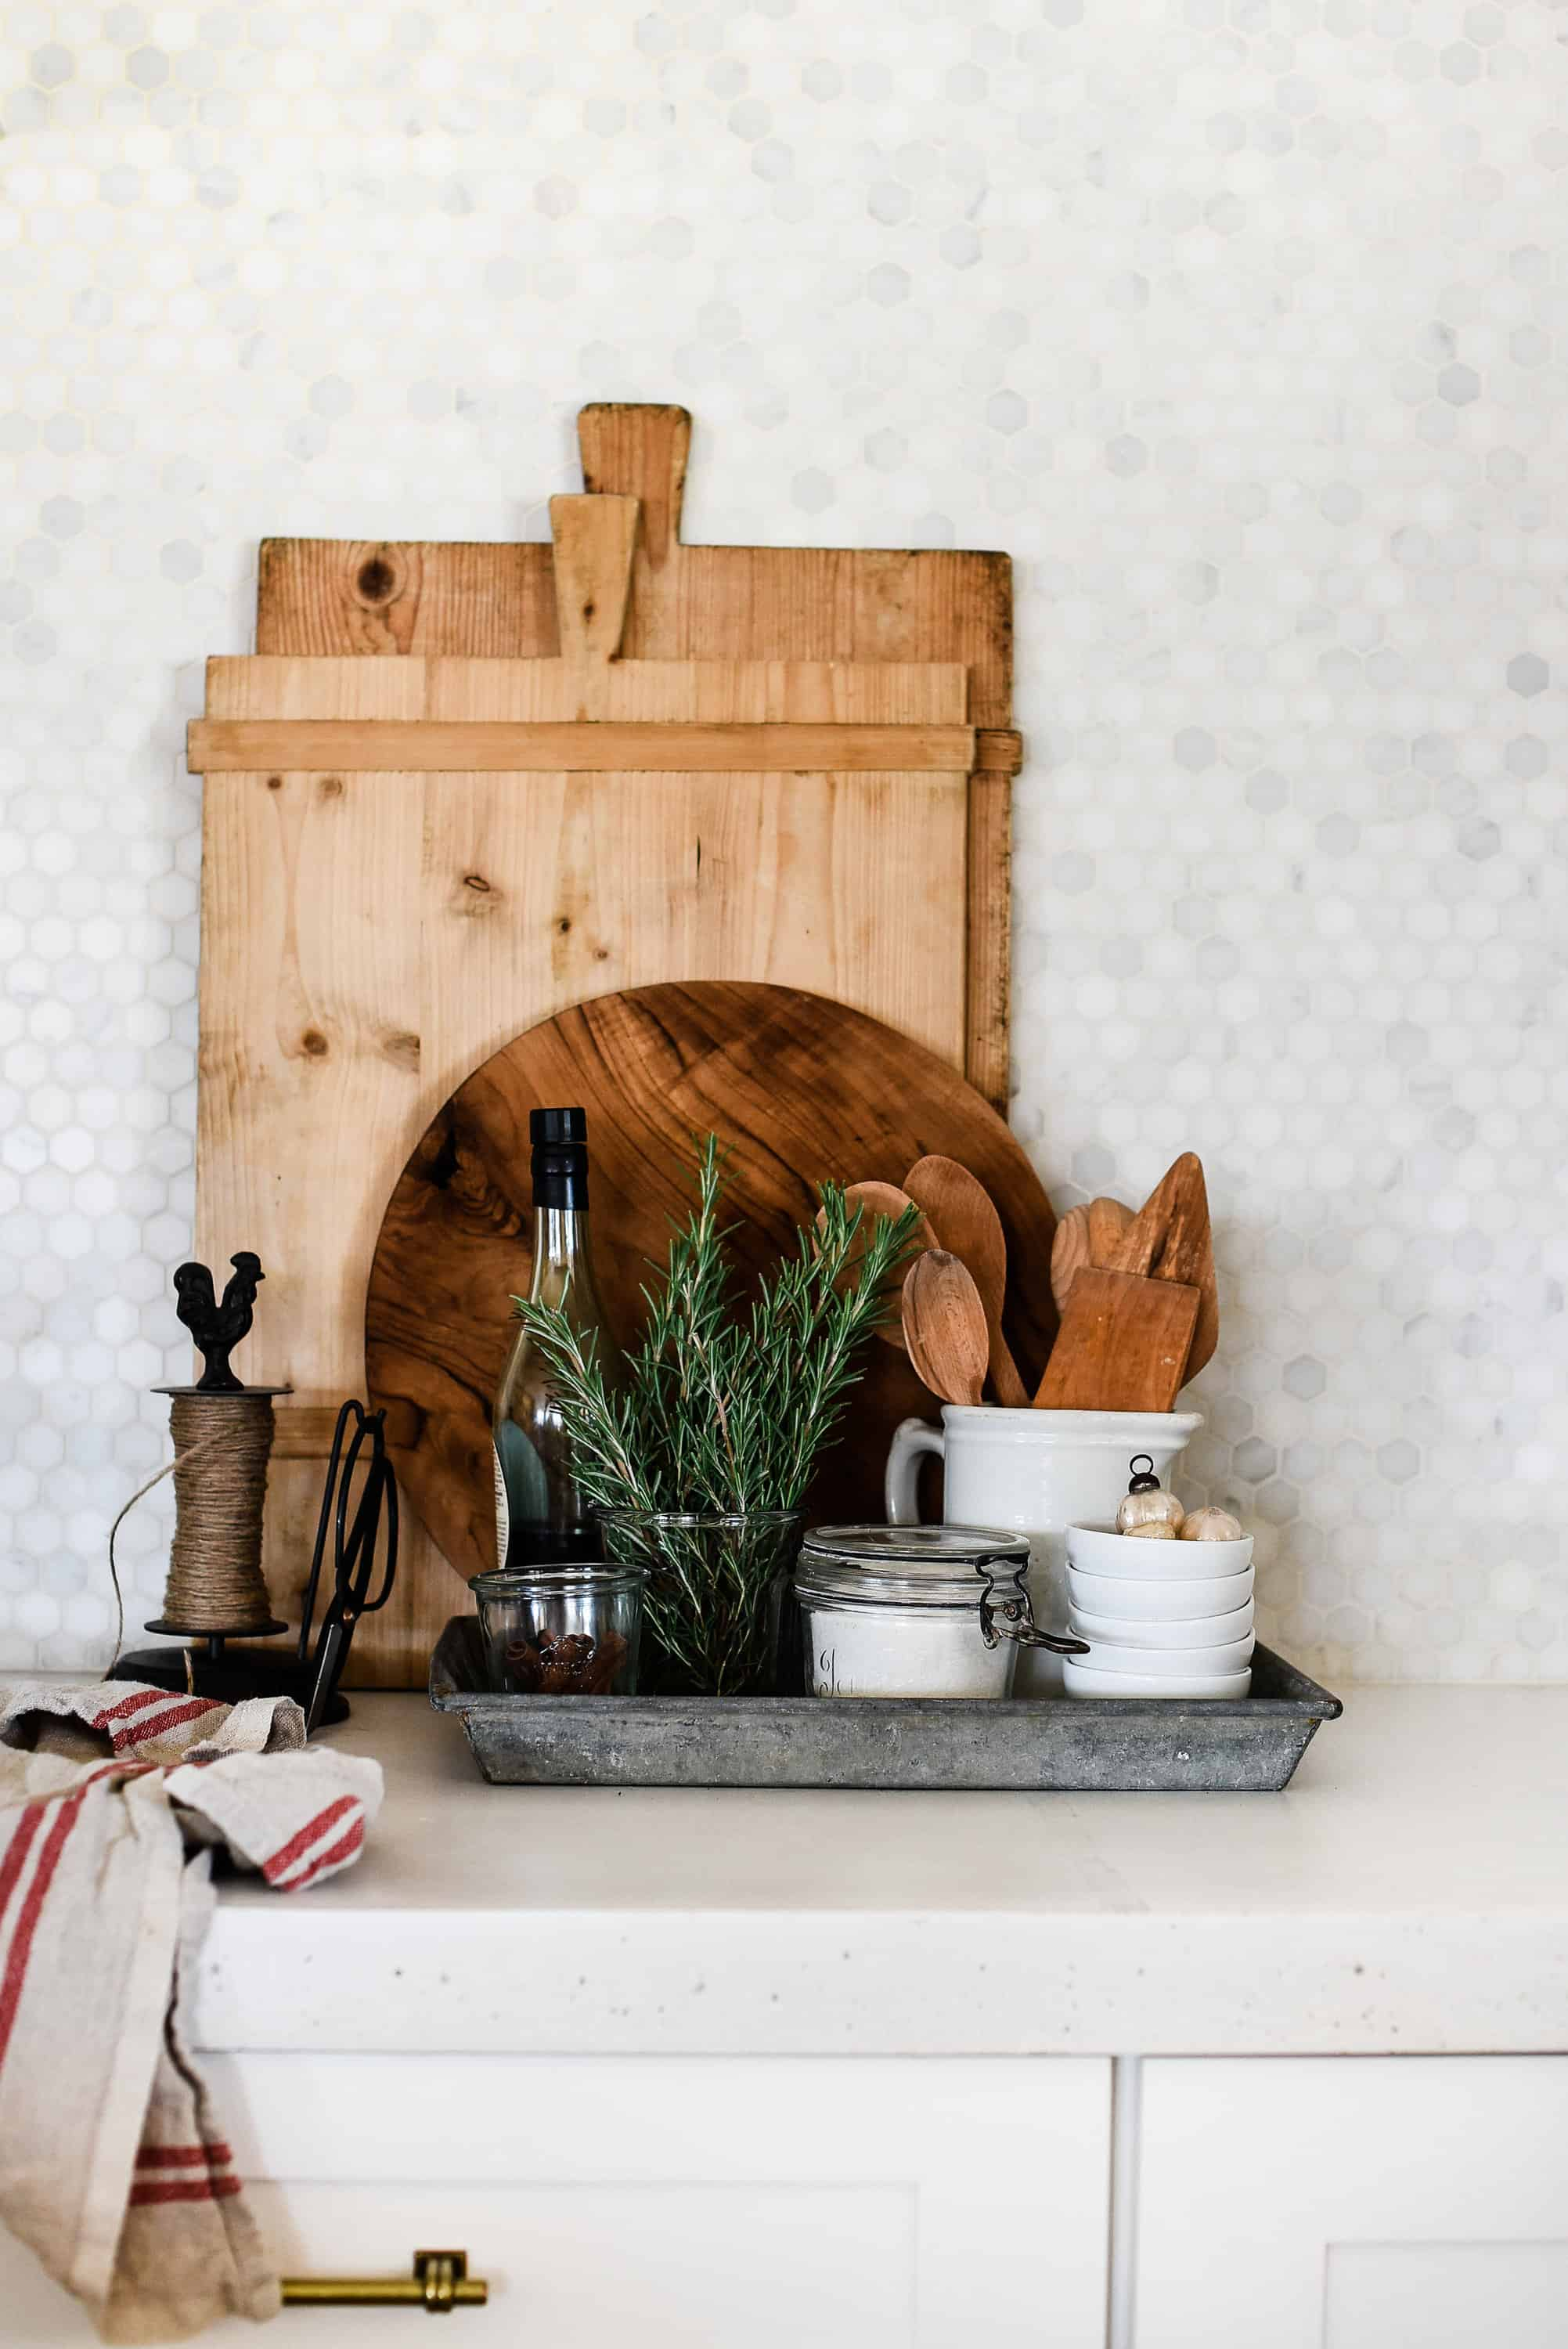 Using vintage or found items in conjunction with a few beautiful newbies for a beautiful modern farmhouse Christmas!